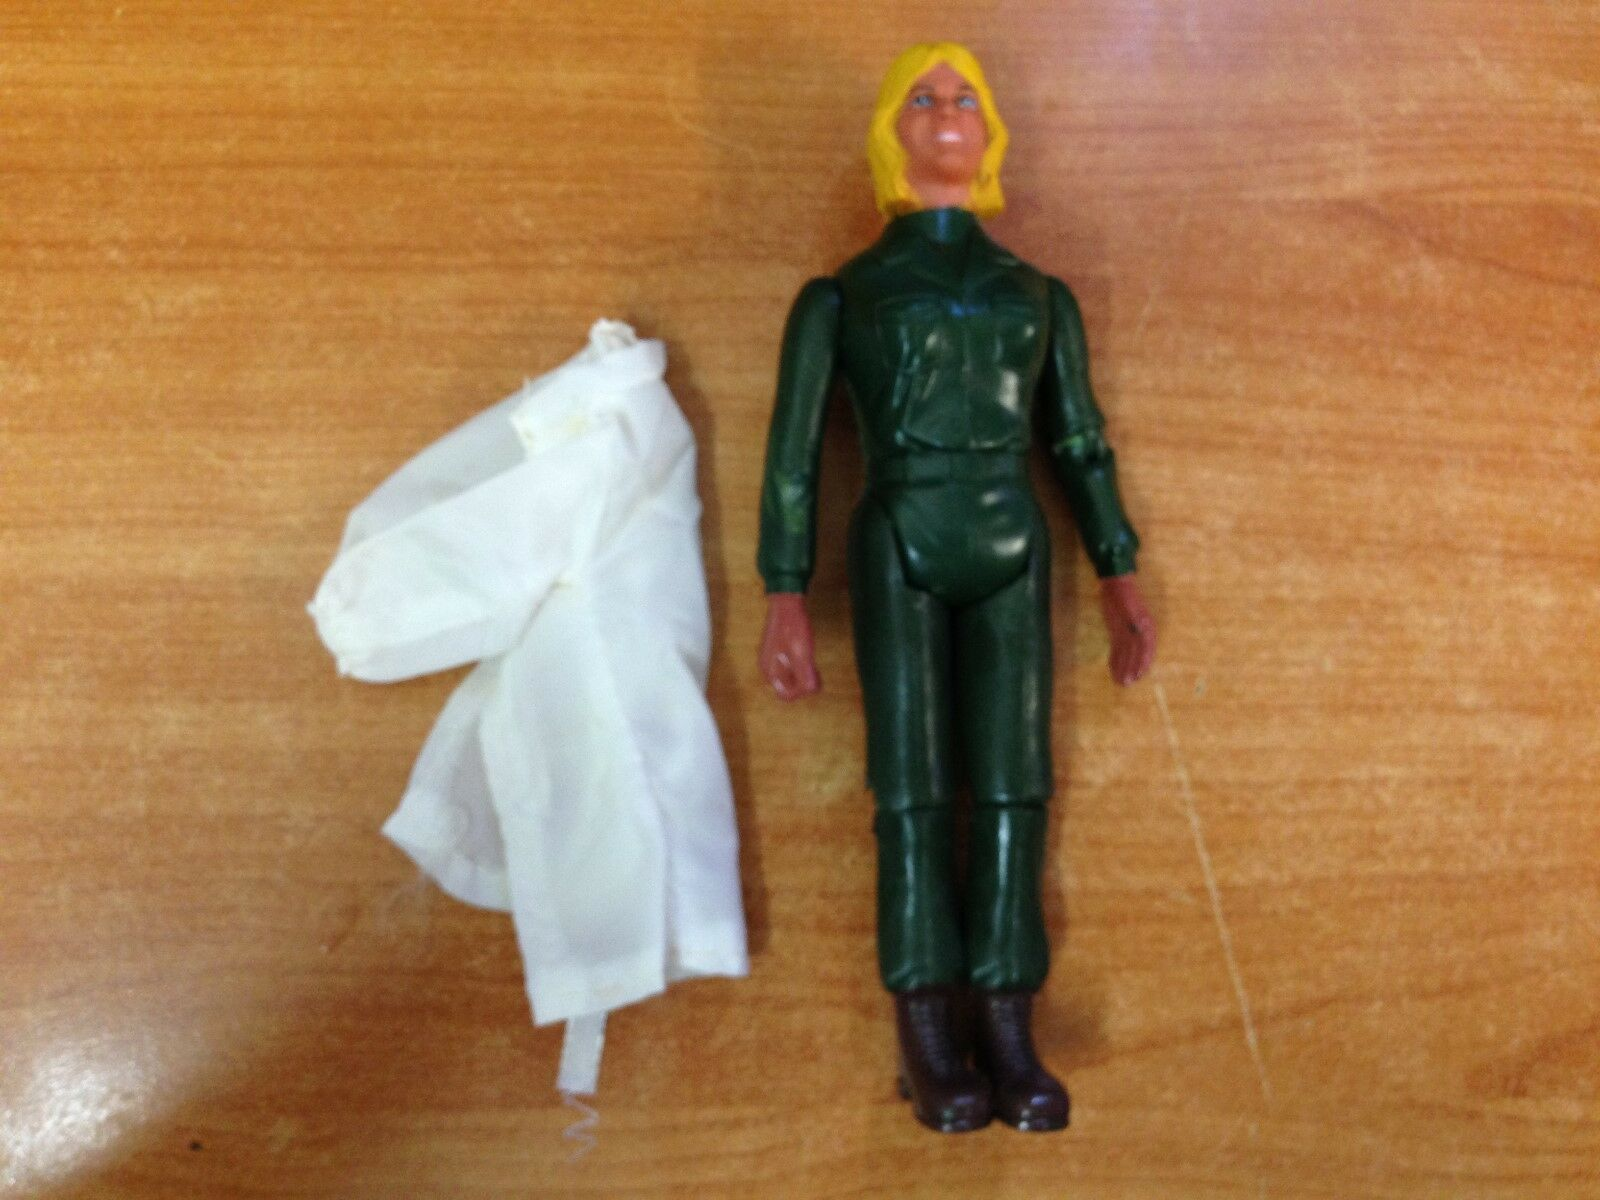 Rare Vintage 1975 MASH M.A.S.H. 9 inch Action Figure - Hot Lips